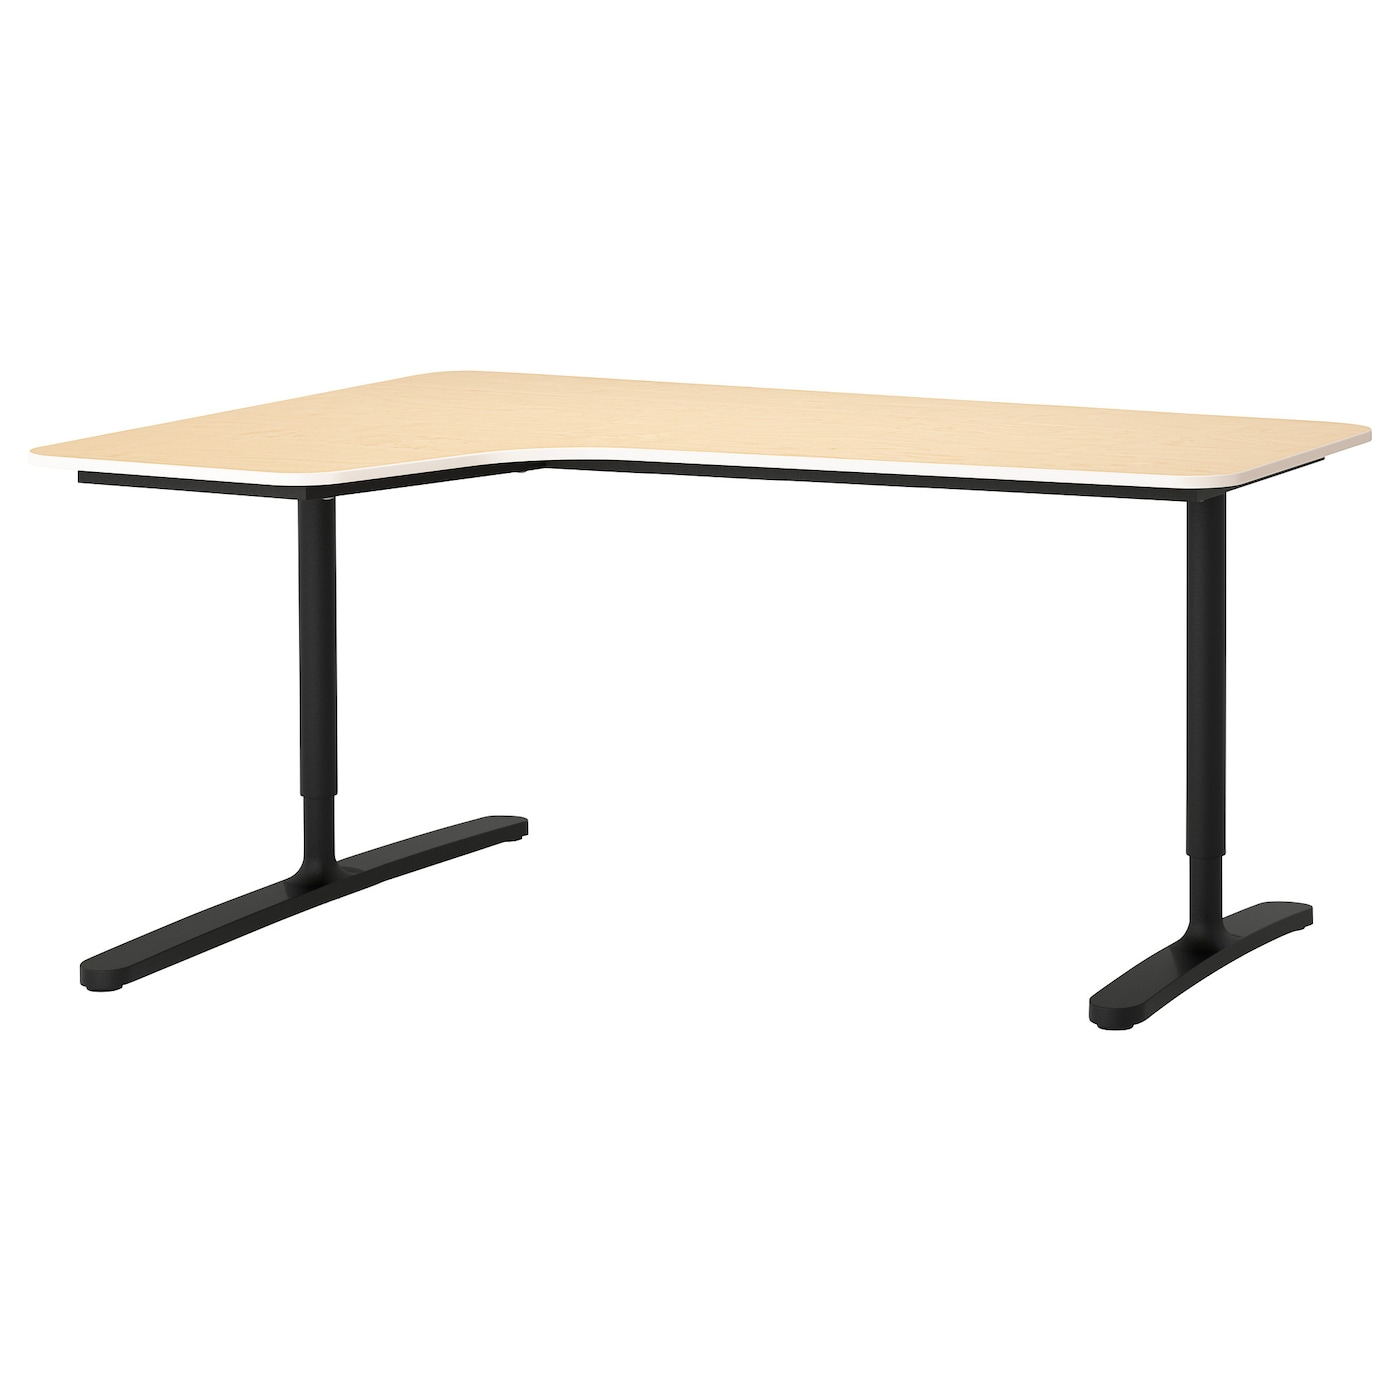 IKEA BEKANT corner desk left 10 year guarantee. Read about the terms in the  guarantee